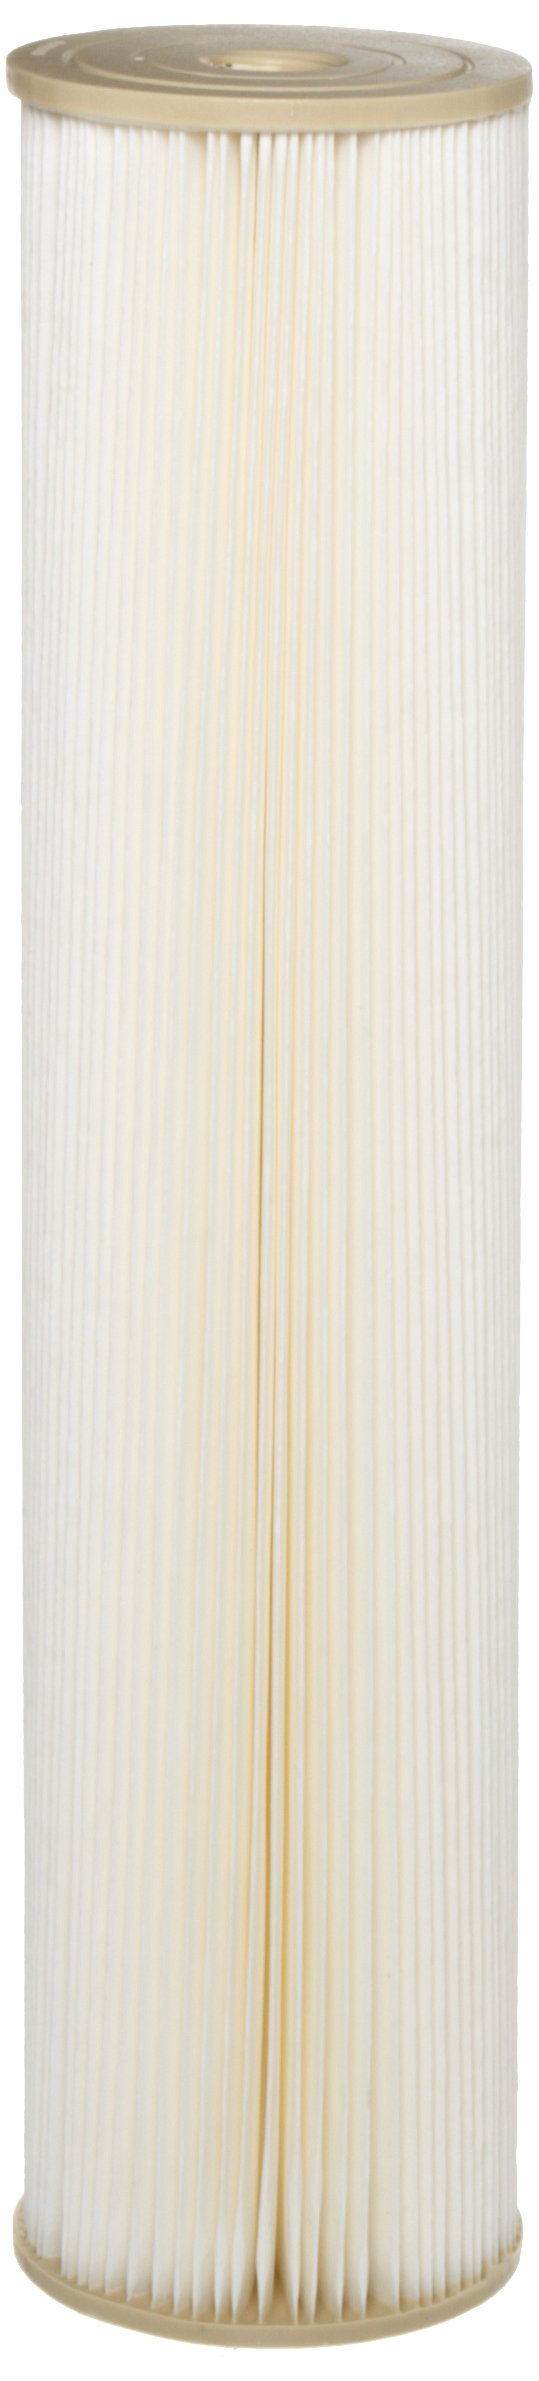 Pentek ECP1-20BB Pleated Cellulose Polyester Filter Cartridge, 20'' x 4-1/2'', 1 Micron